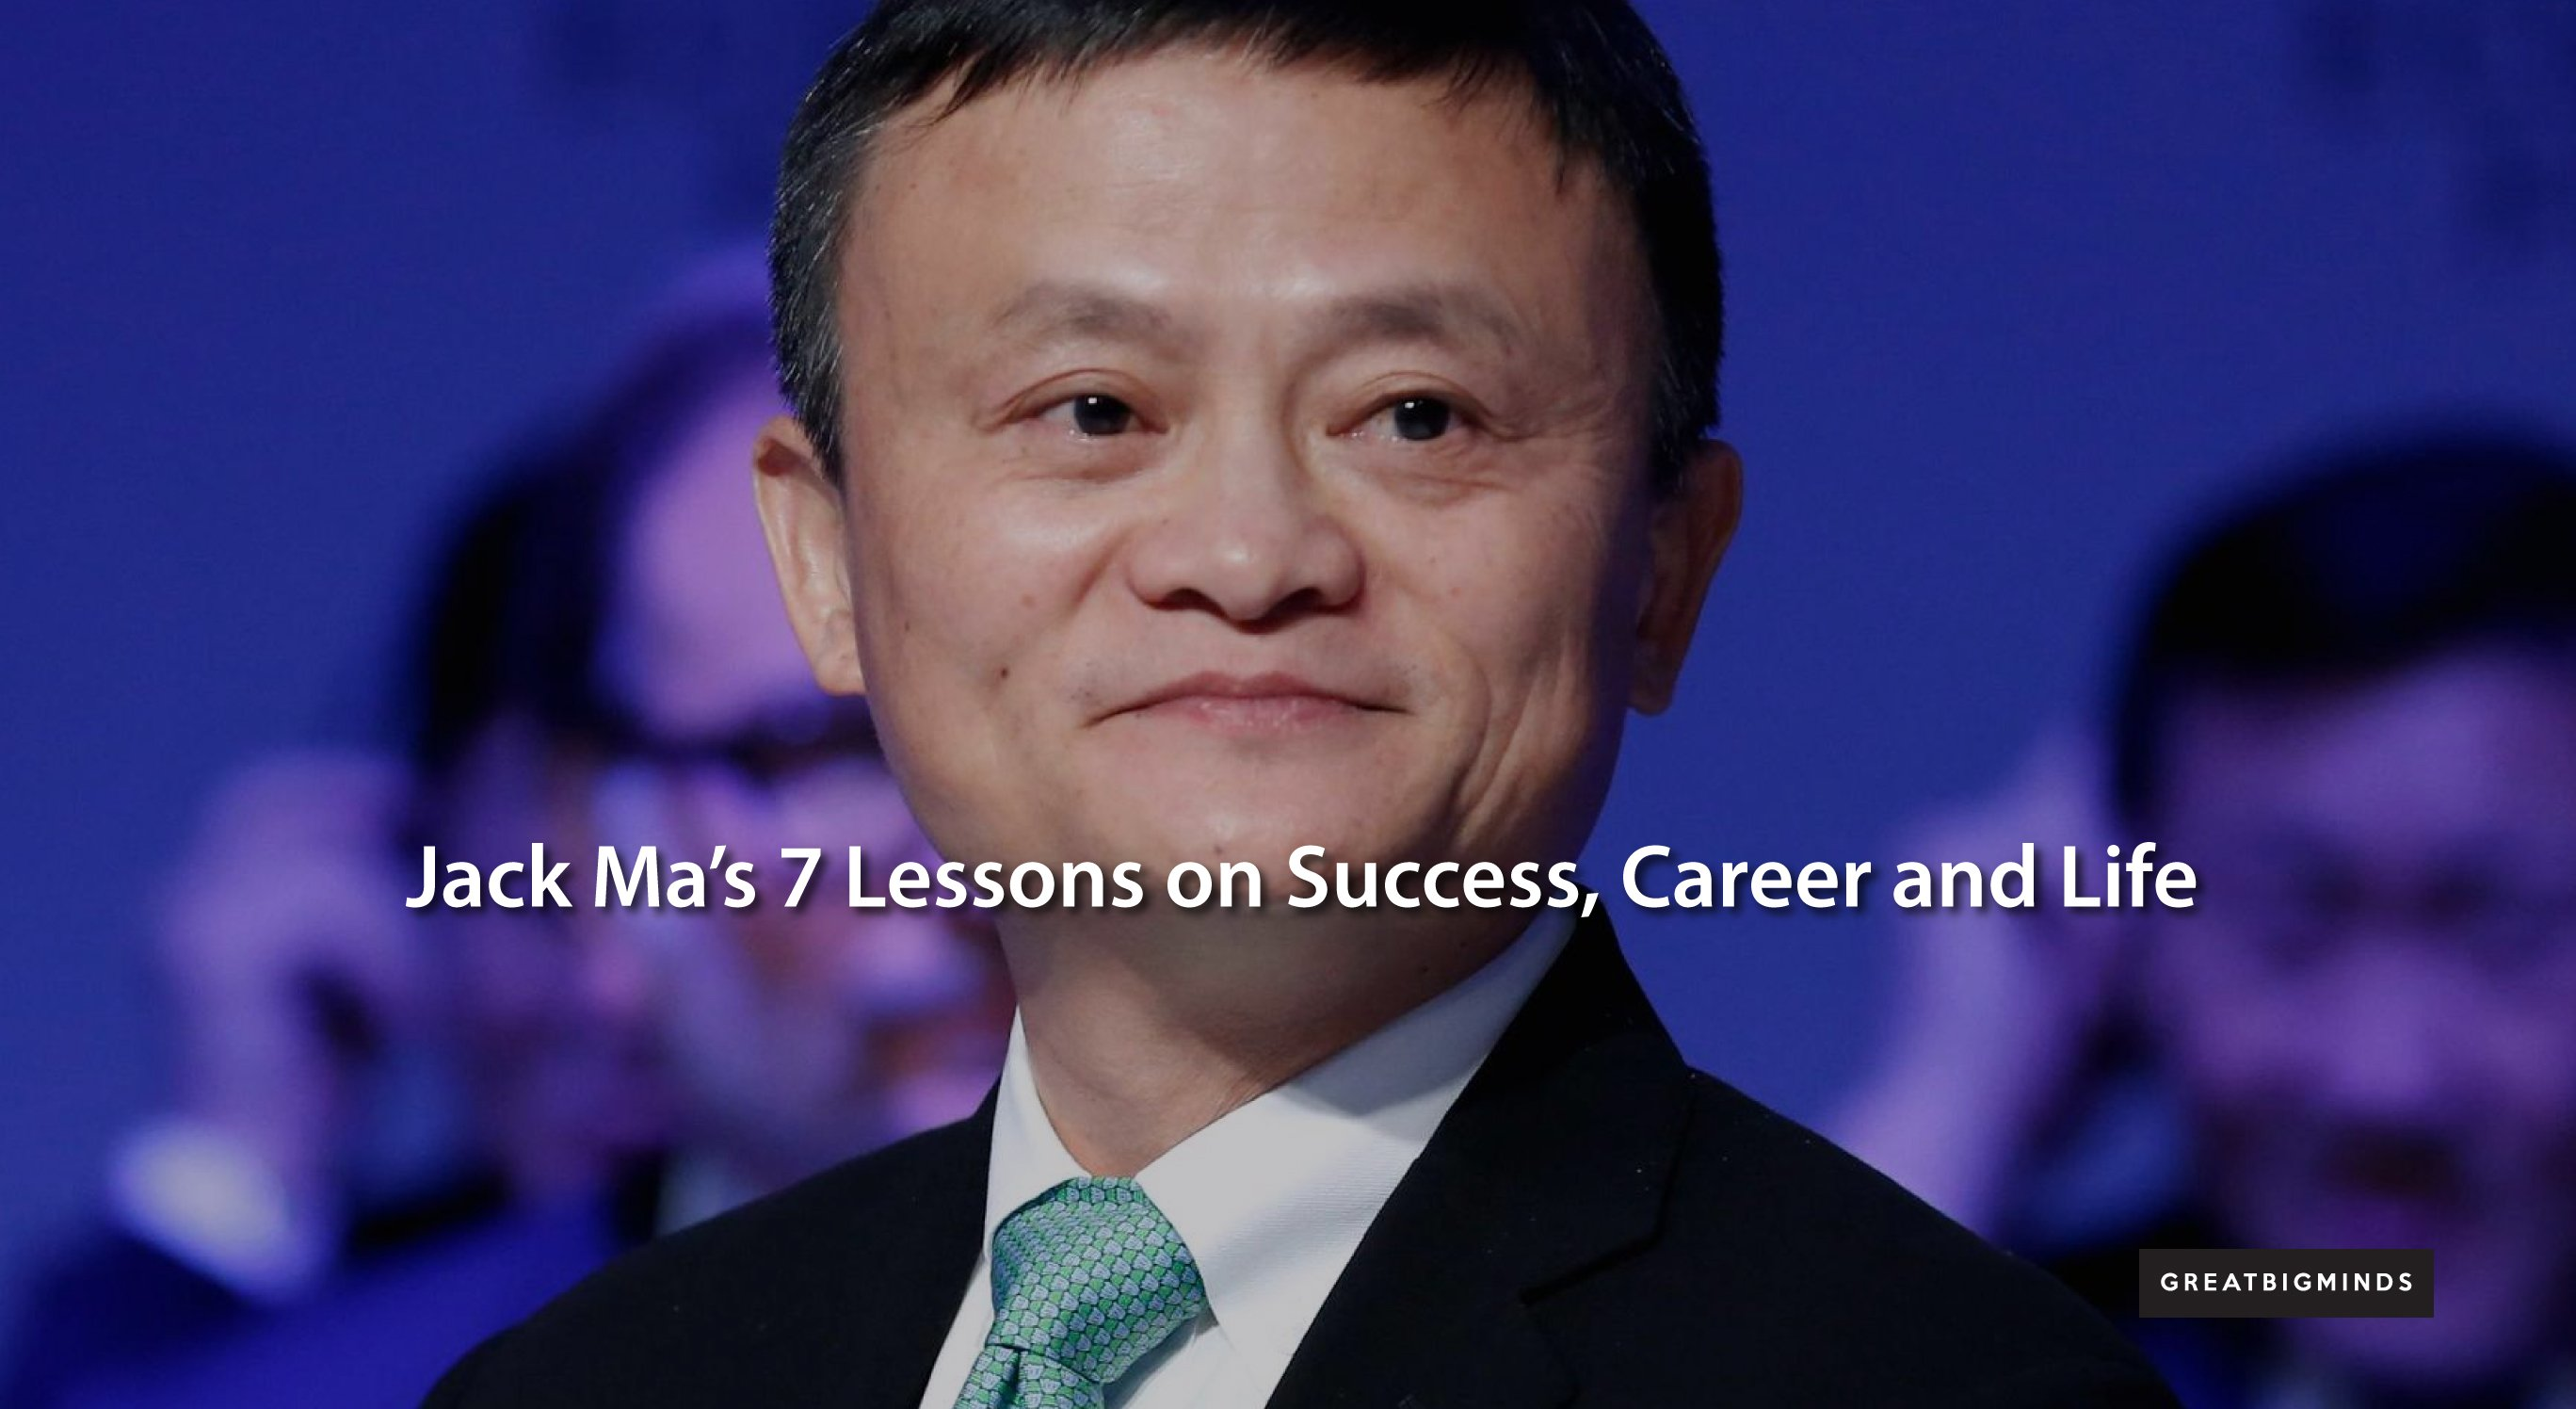 Jack Ma 7 Lessons on Success, Career and Life